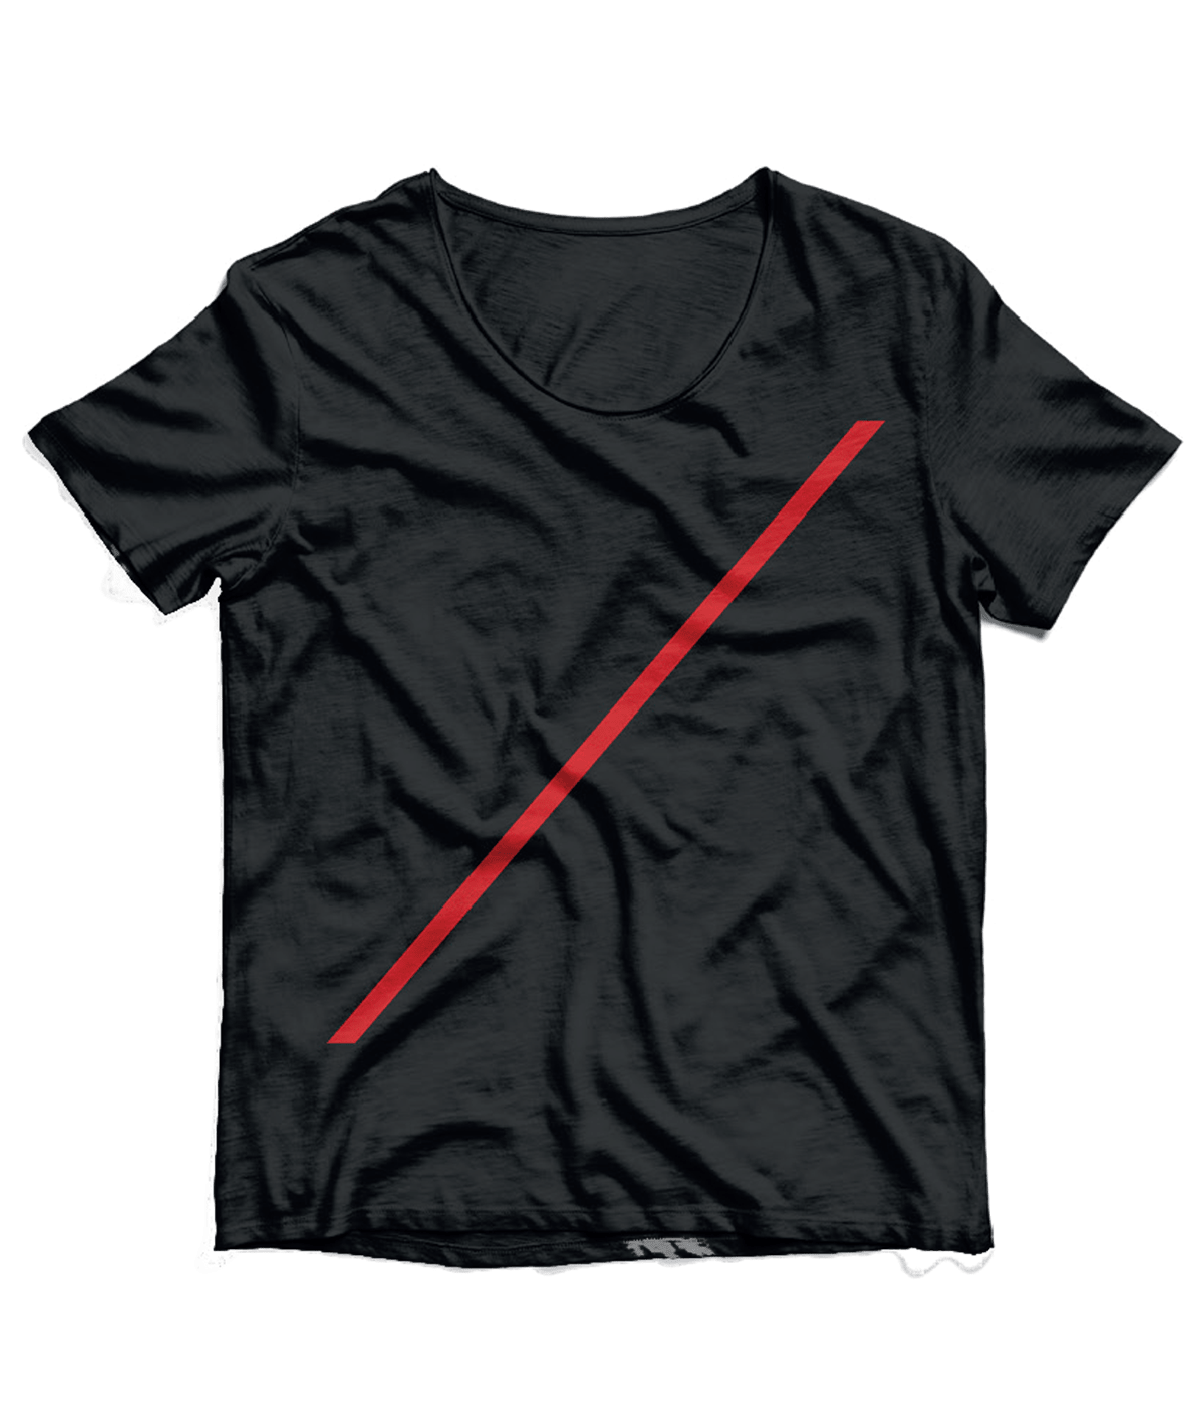 T-Shirt  Black with red stripe